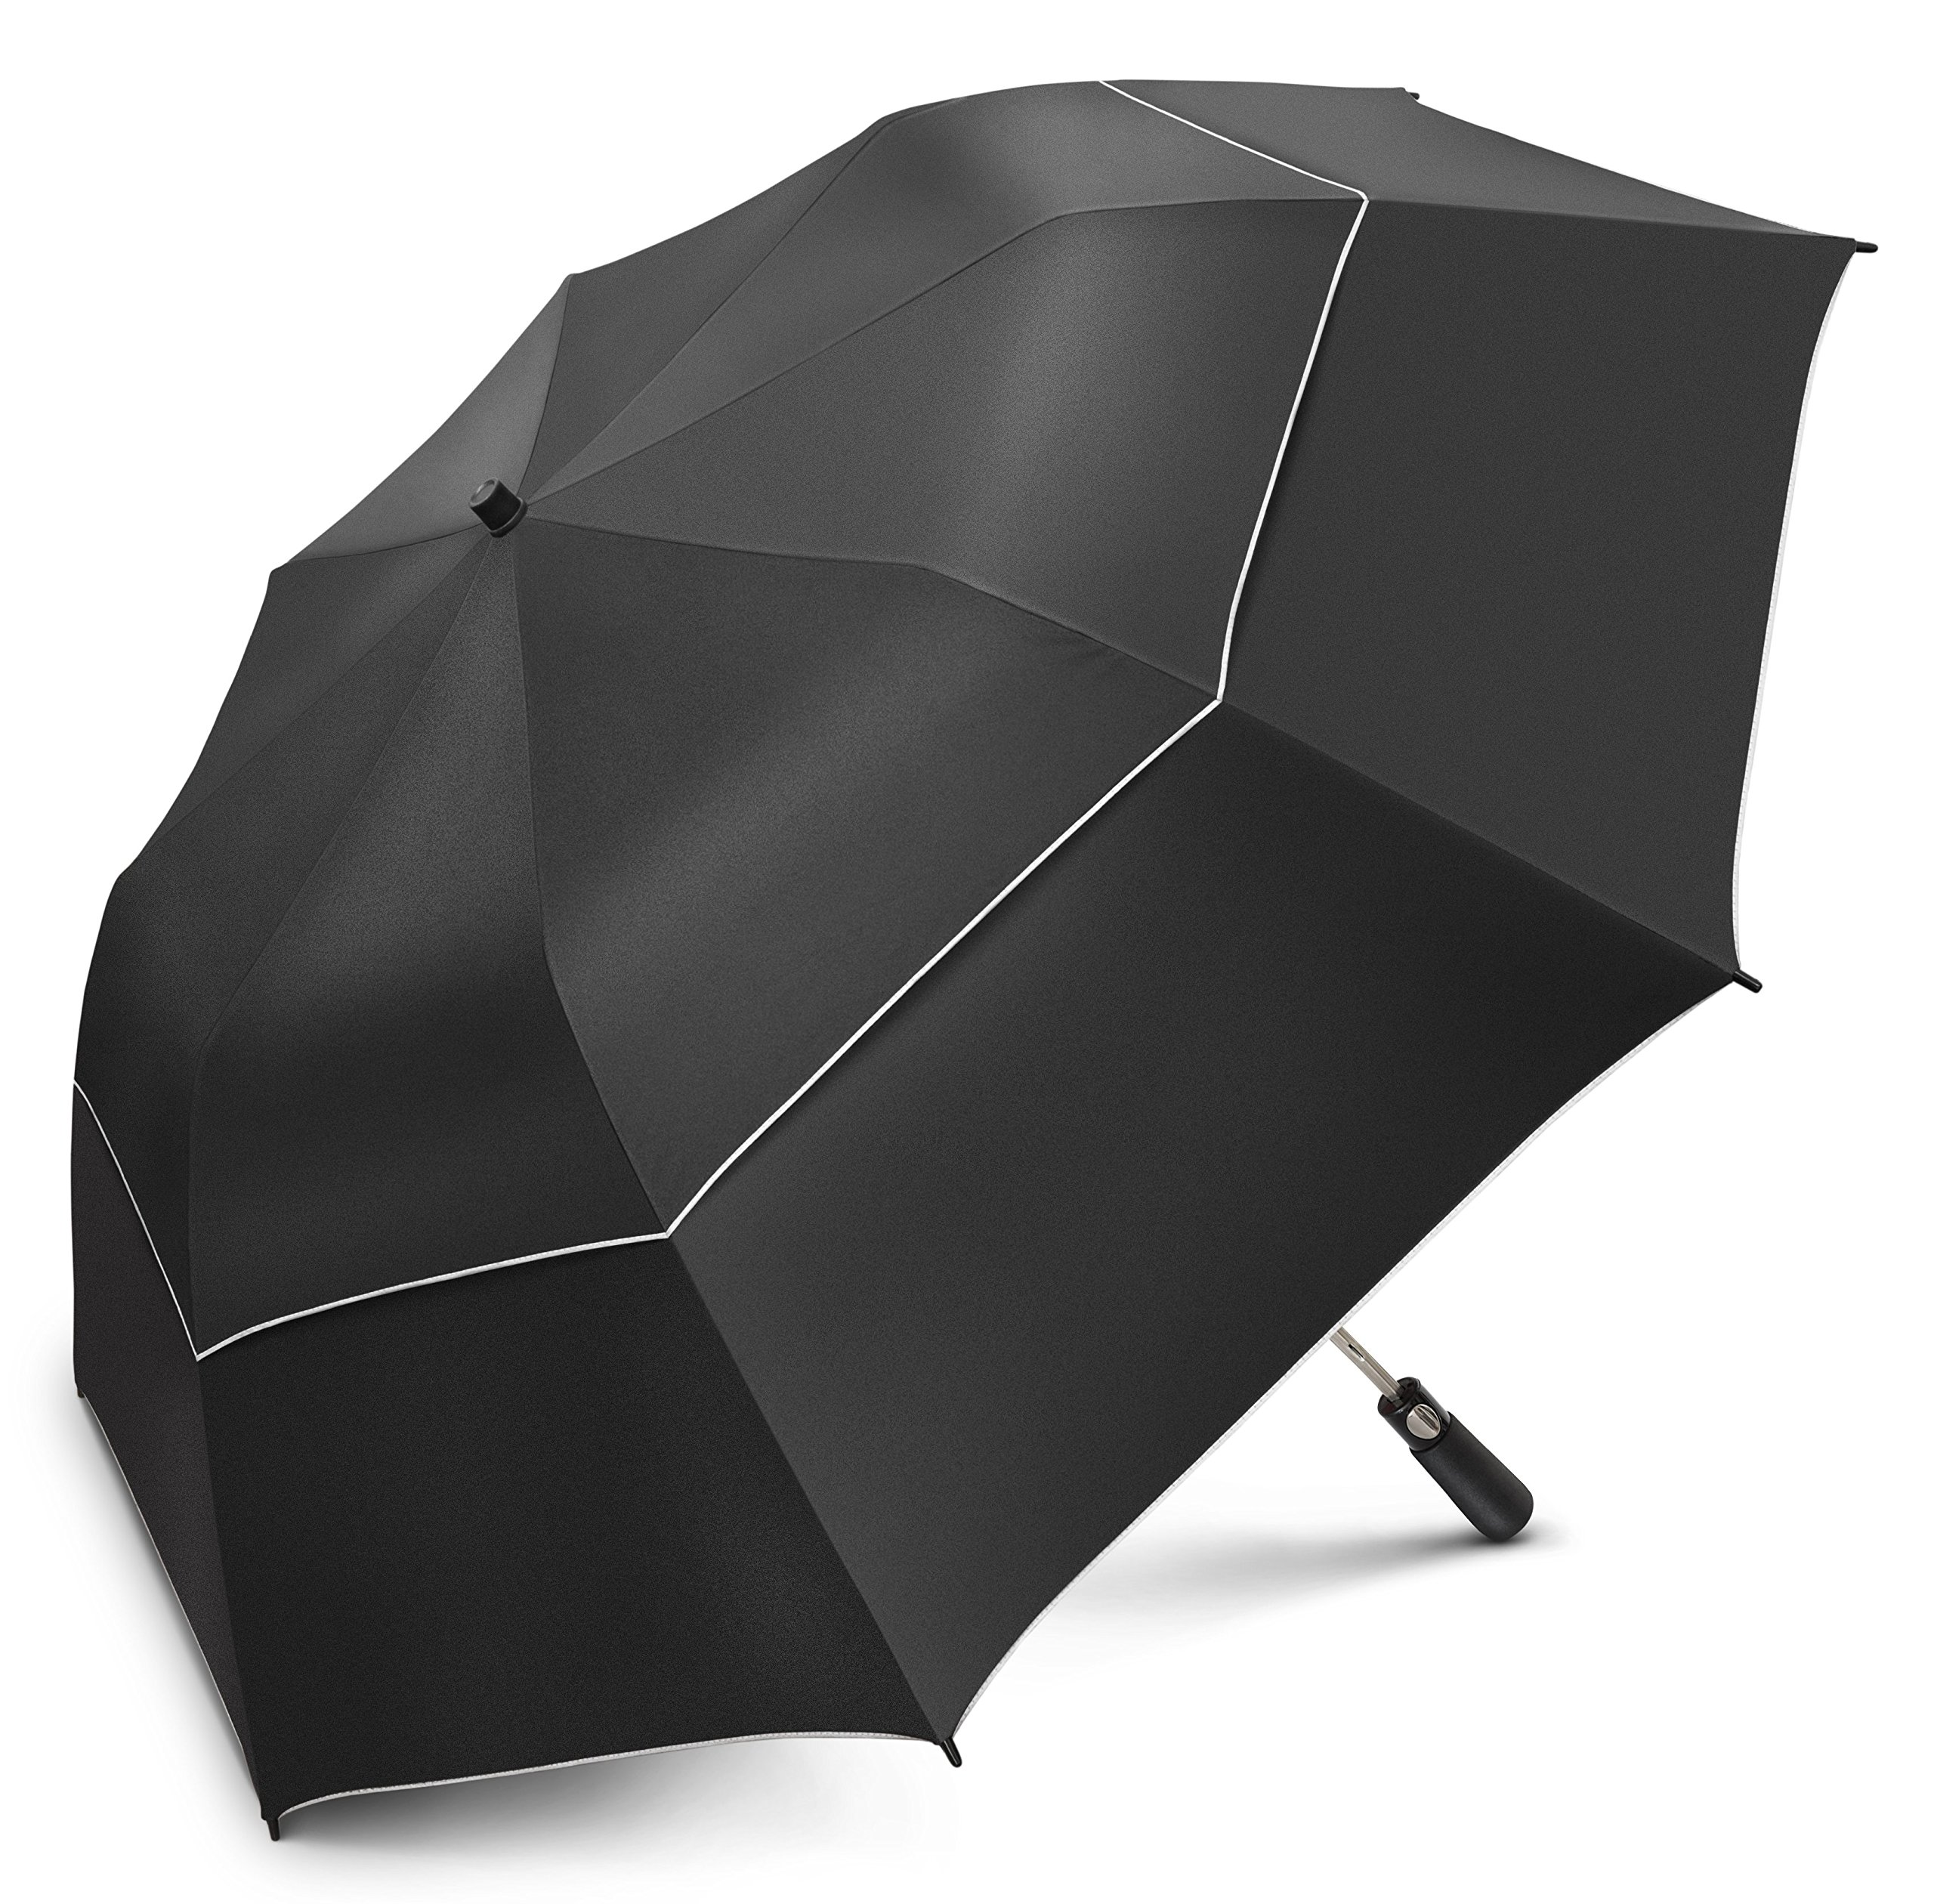 EEZ-Y 58 inch Compact Golf Umbrella UPF 50 Plus UV Protection - Large Windproof Double Canopy - Sun and Rain Umbrellas by EEZ-Y